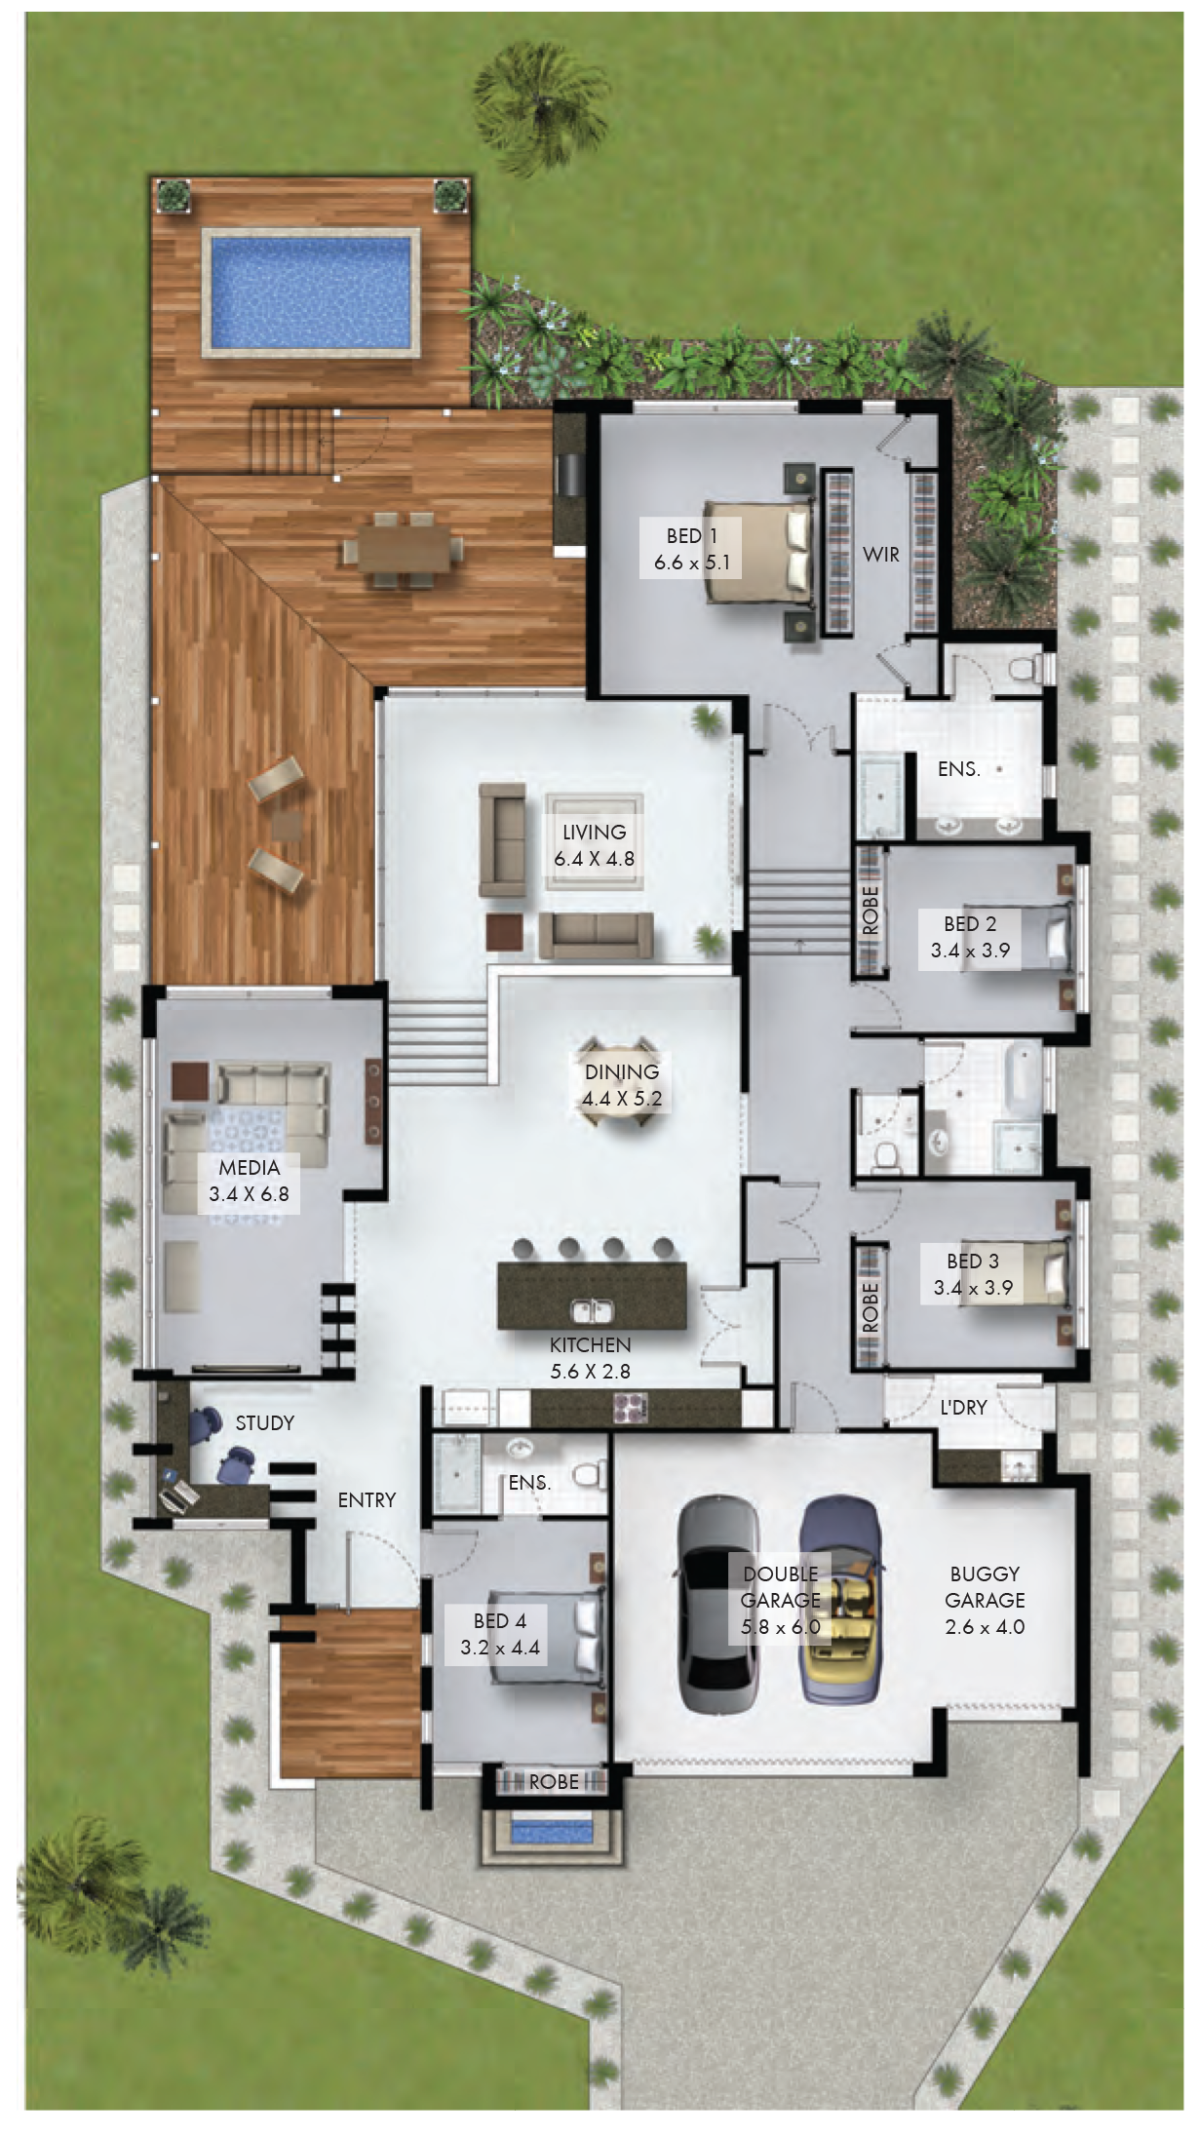 Floor Plan Friday 4 bedroom home with study nook and